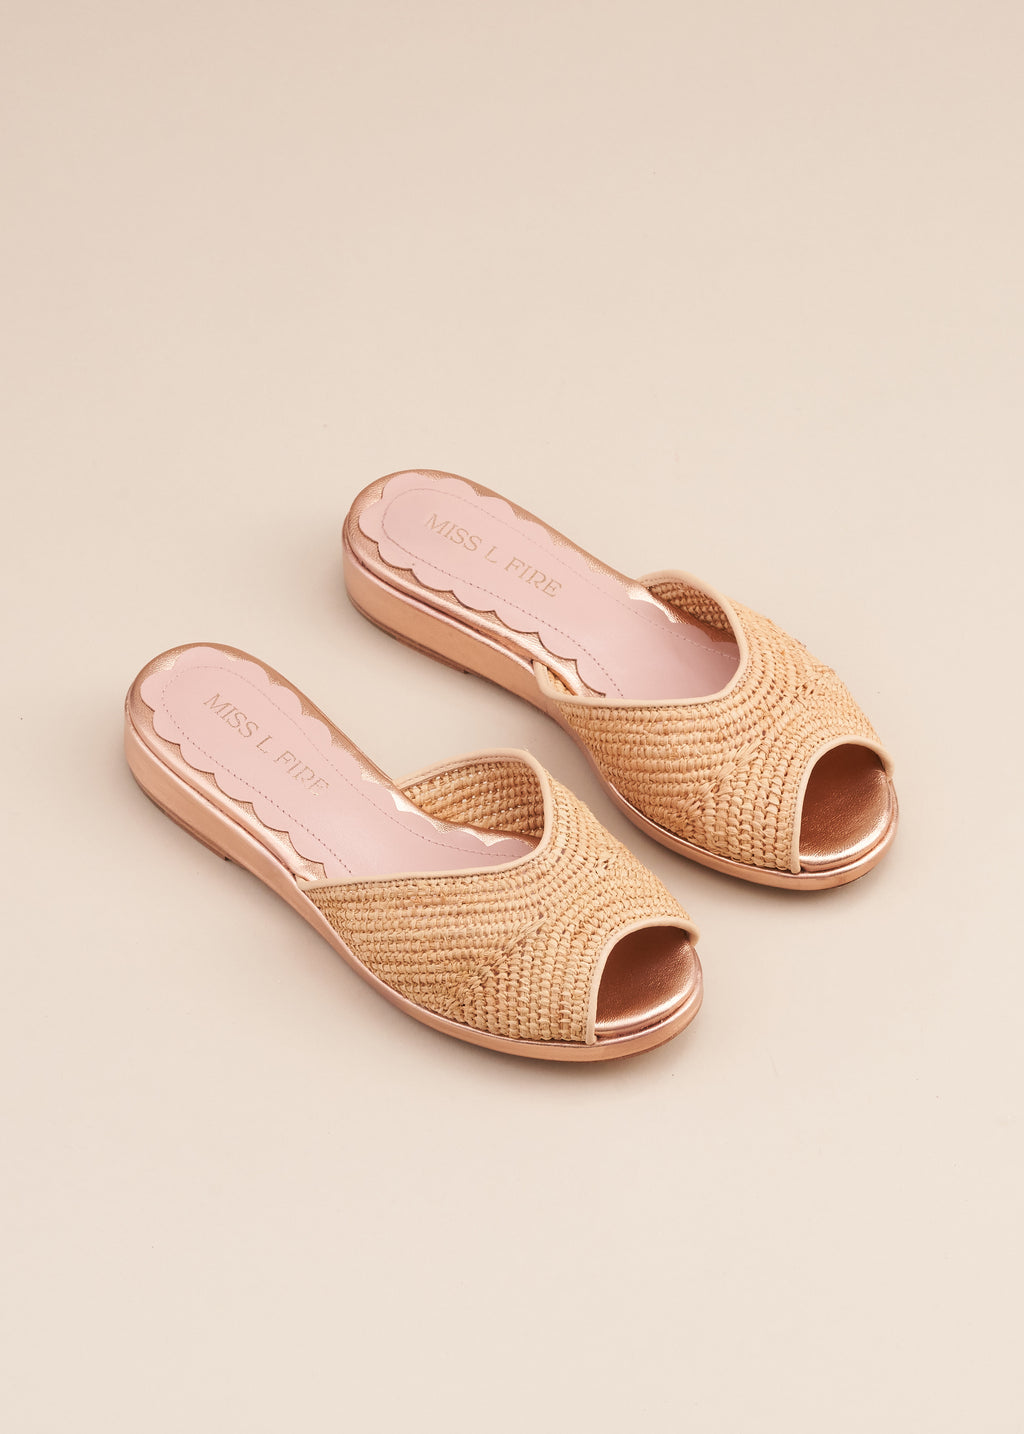 Reiki Natural Raffia and Rose Gold Wedge Slide- LAST PAIRS SIZES 41 & 42!